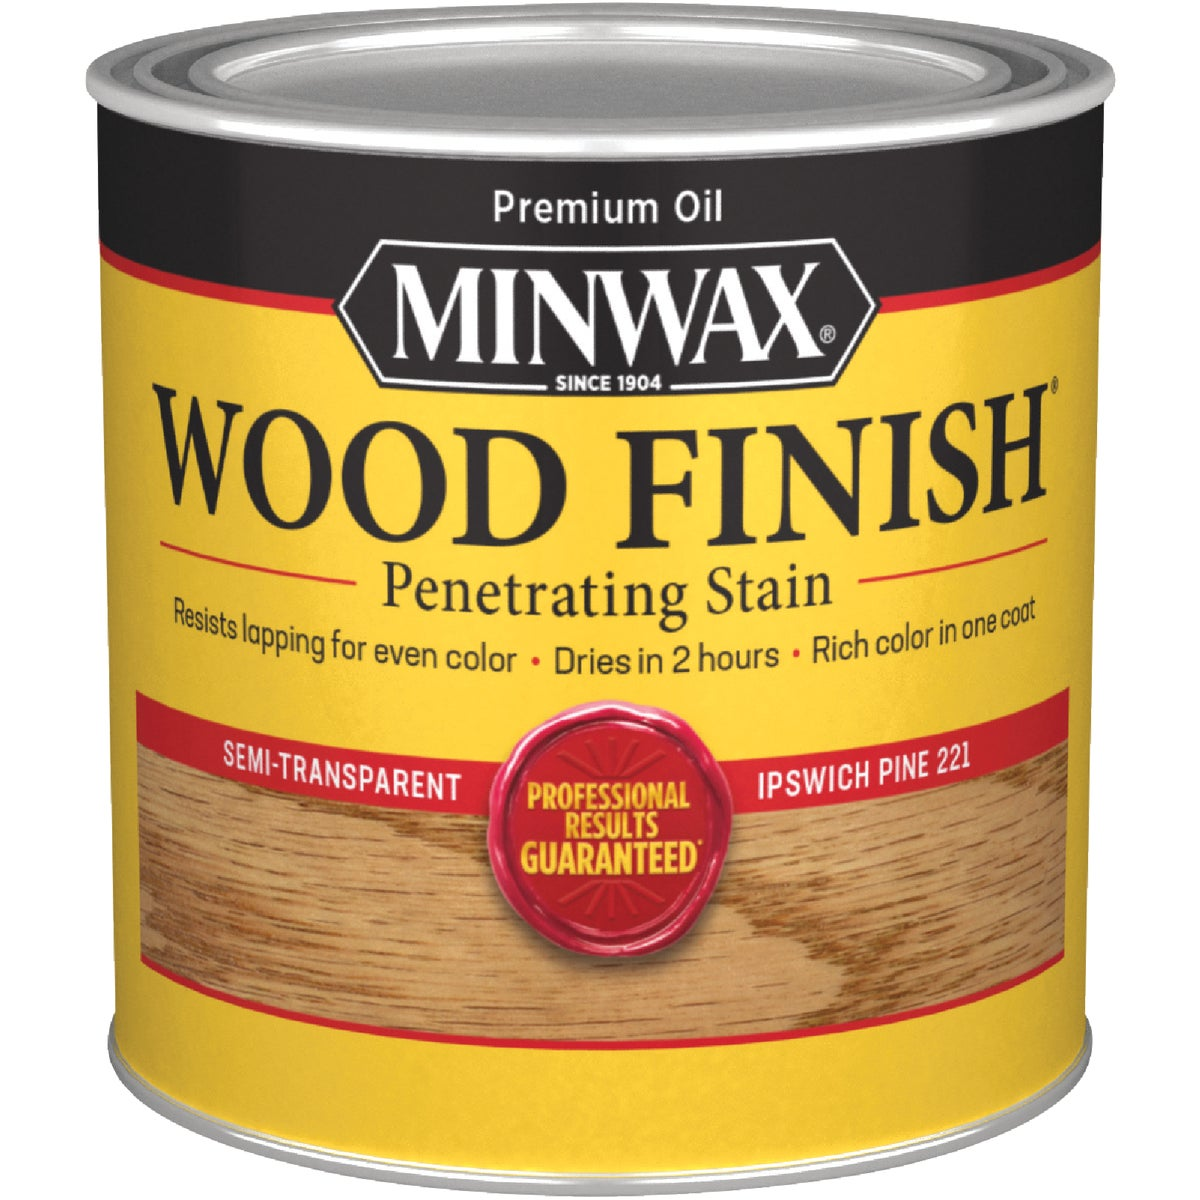 IPSWICH PINE WOOD STAIN - 222104444 by Minwax Company